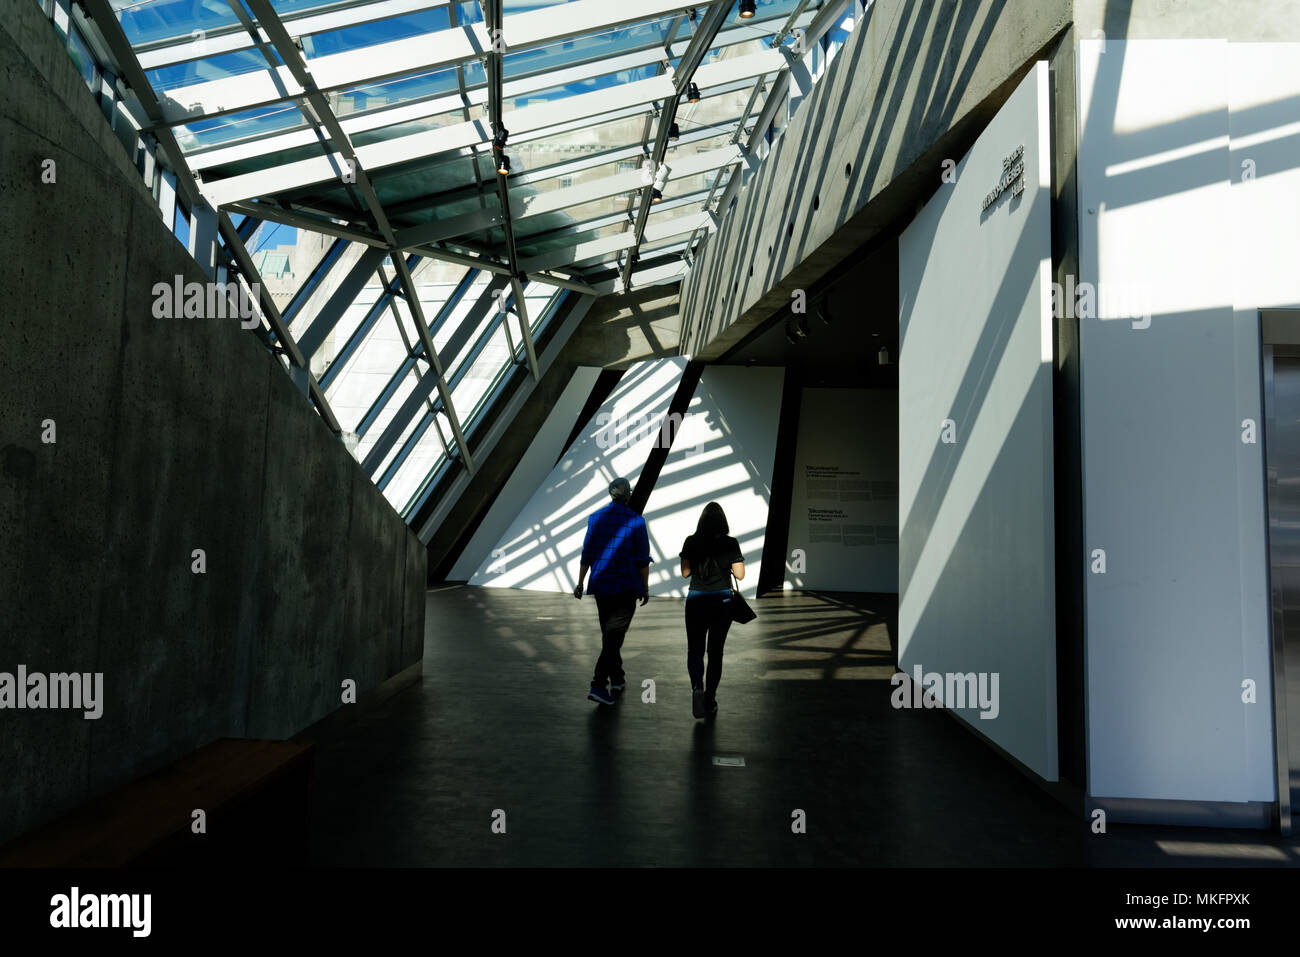 Modern architecture in the Claire and Marc Bourgie Pavilion of the Montreal Fine Arts Museum - Stock Image